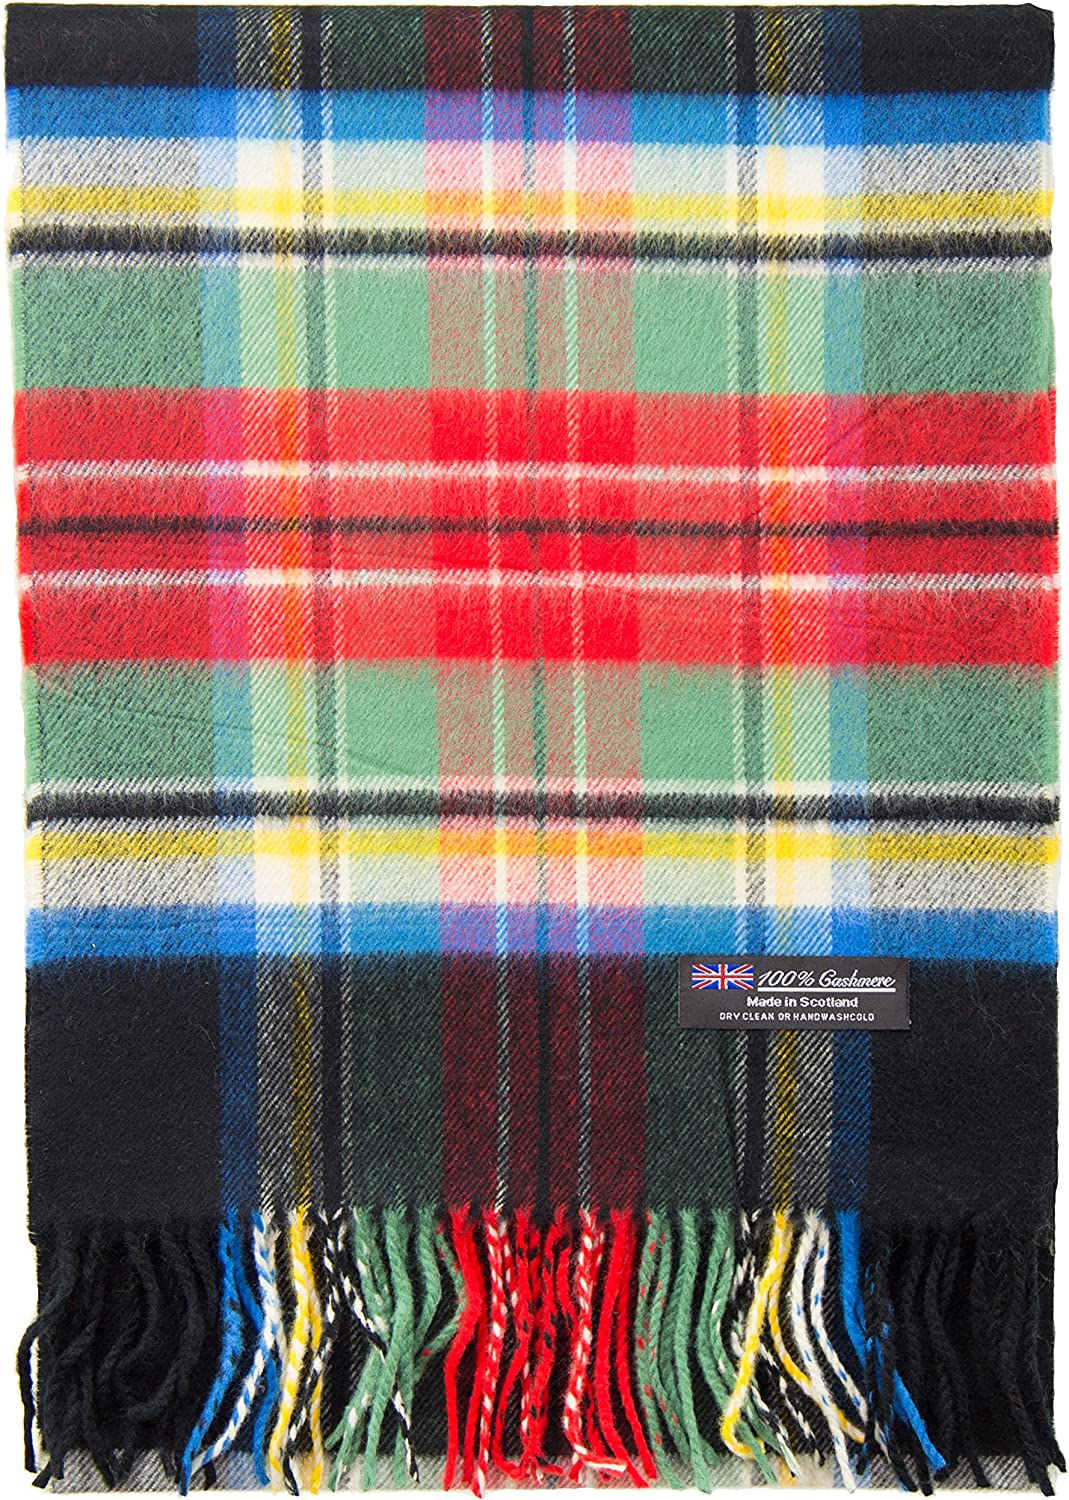 2 PLY 100% Cashmere Scarf Winter City Fashion Collection Made in Scotland Warm Soft Wool Solid Tartan Check Plaid Men Women